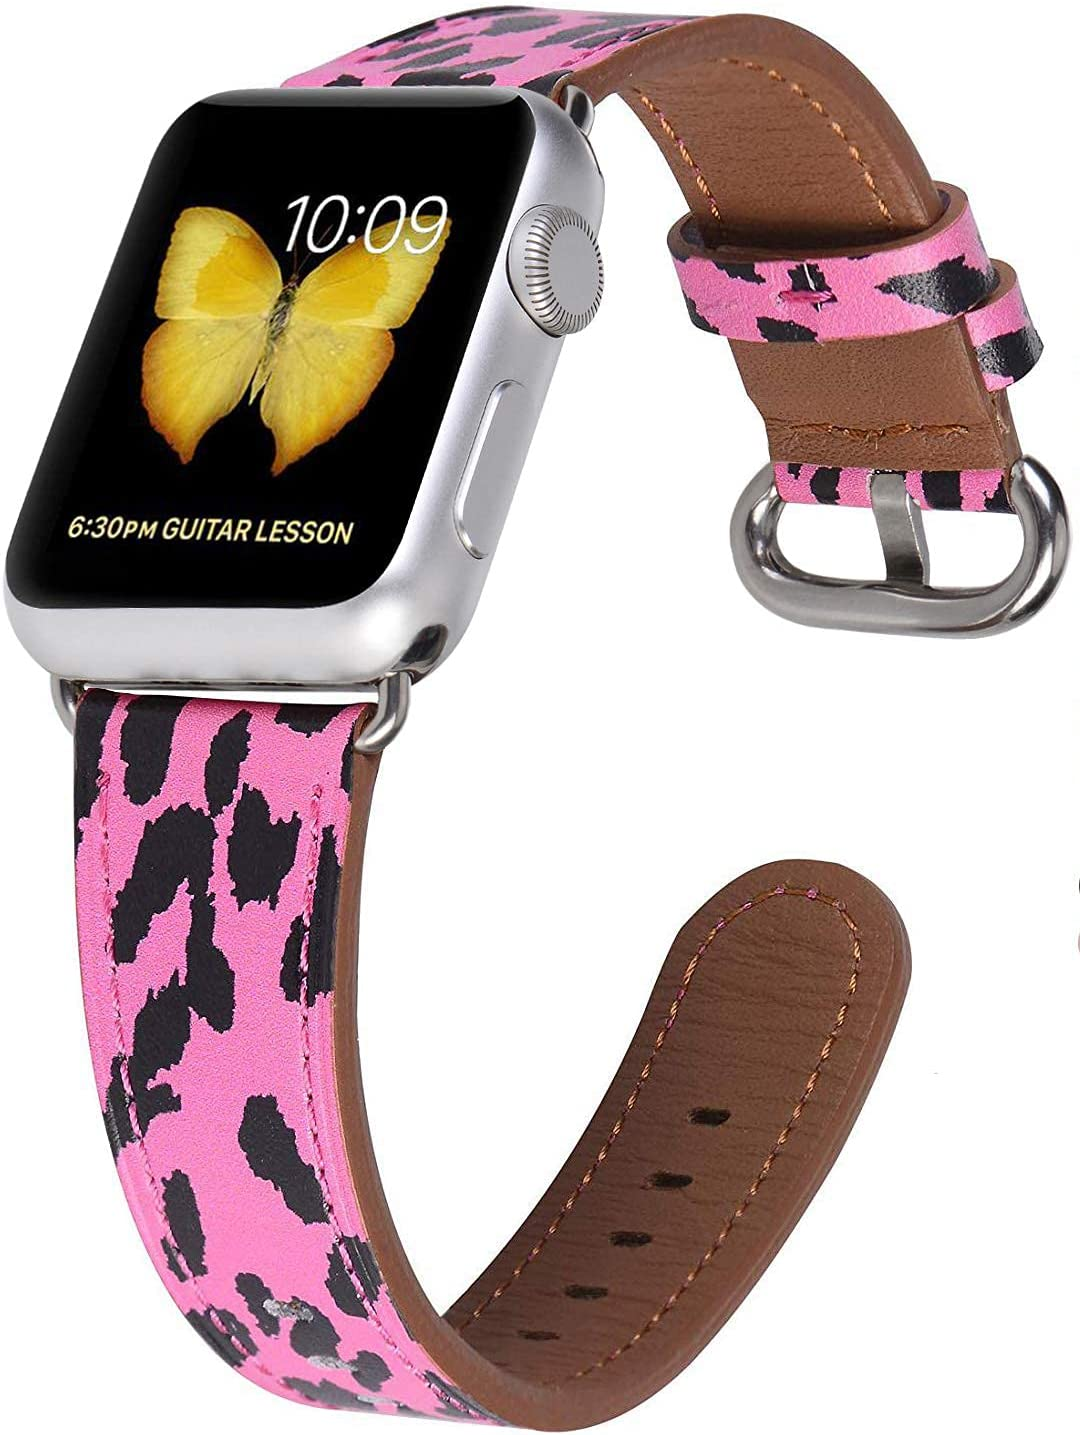 JSGJMY Leather Band Compatible with Apple Watch 38mm 40mm 42mm 44mm Women Men Strap for iWatch SE Series 6 5 4 3 2 1(Hot Pink Leopard with Silver Clasp,38mm/40mm S/M)